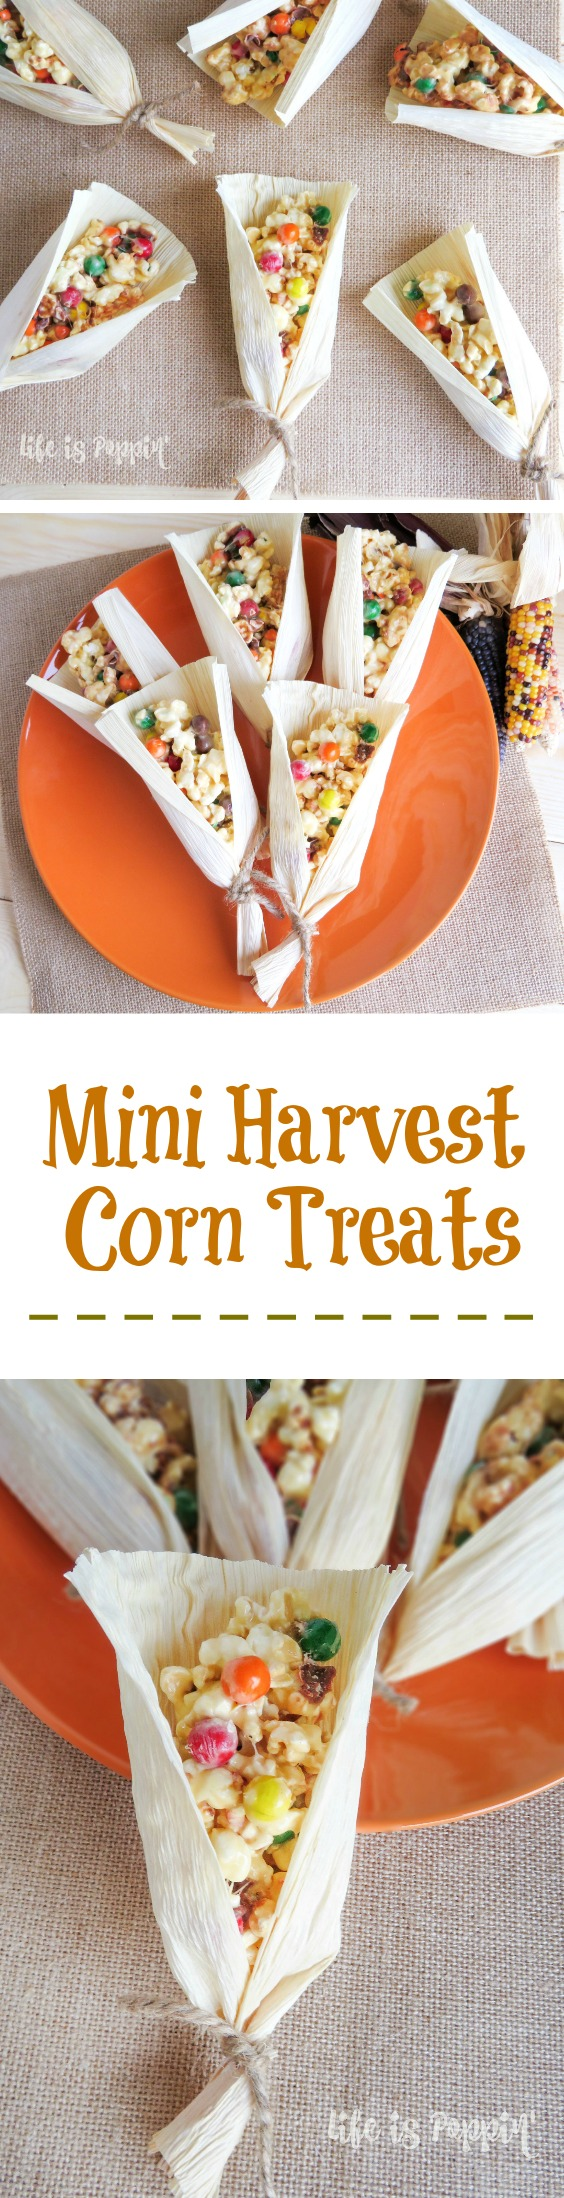 mini-harvest-corn-treats-pinterest